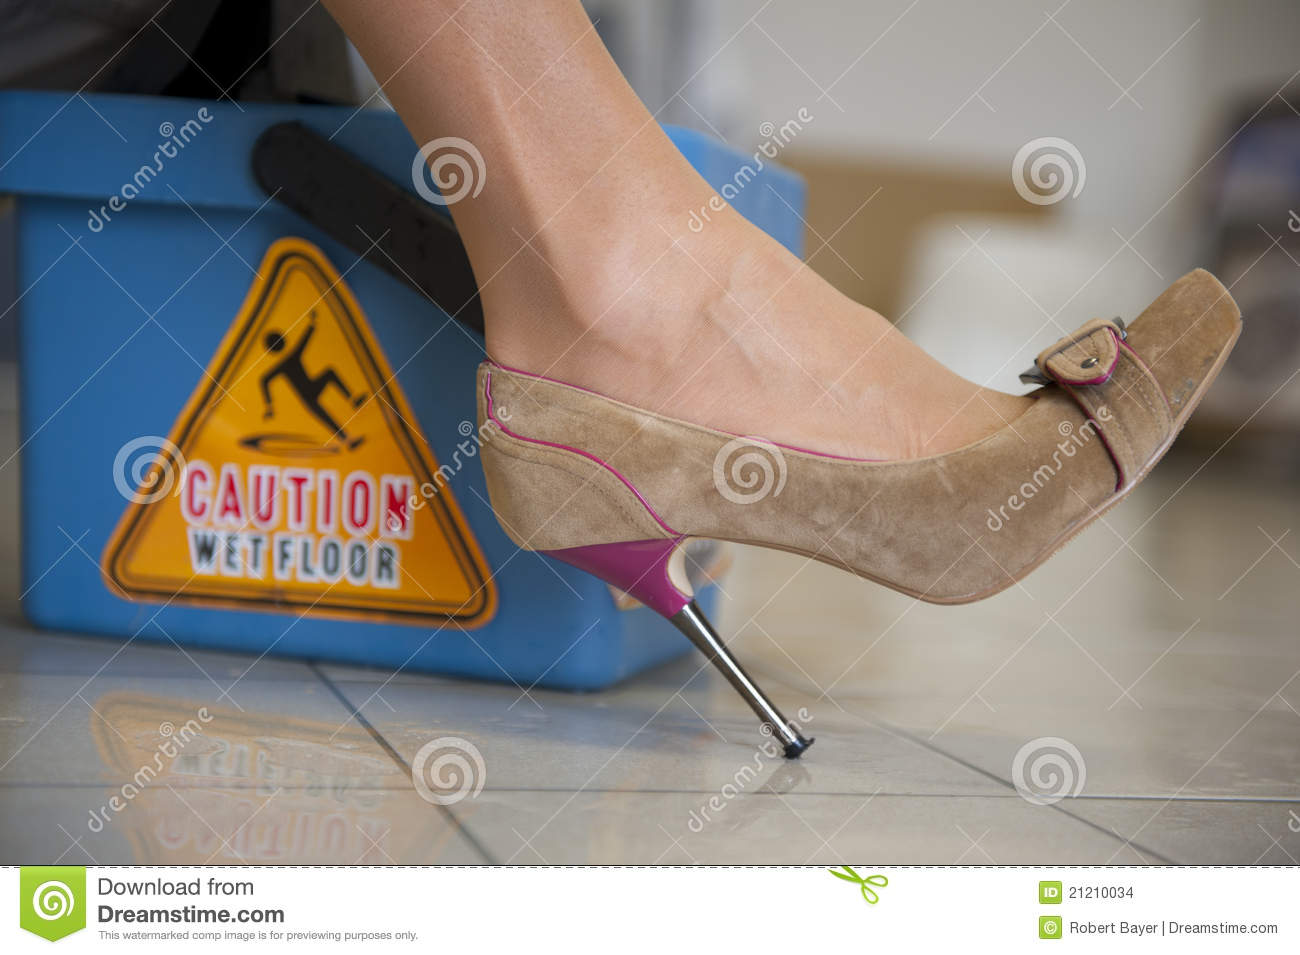 Caution wet floor stock images image 21210034 for How to keep shoes from slipping on floor